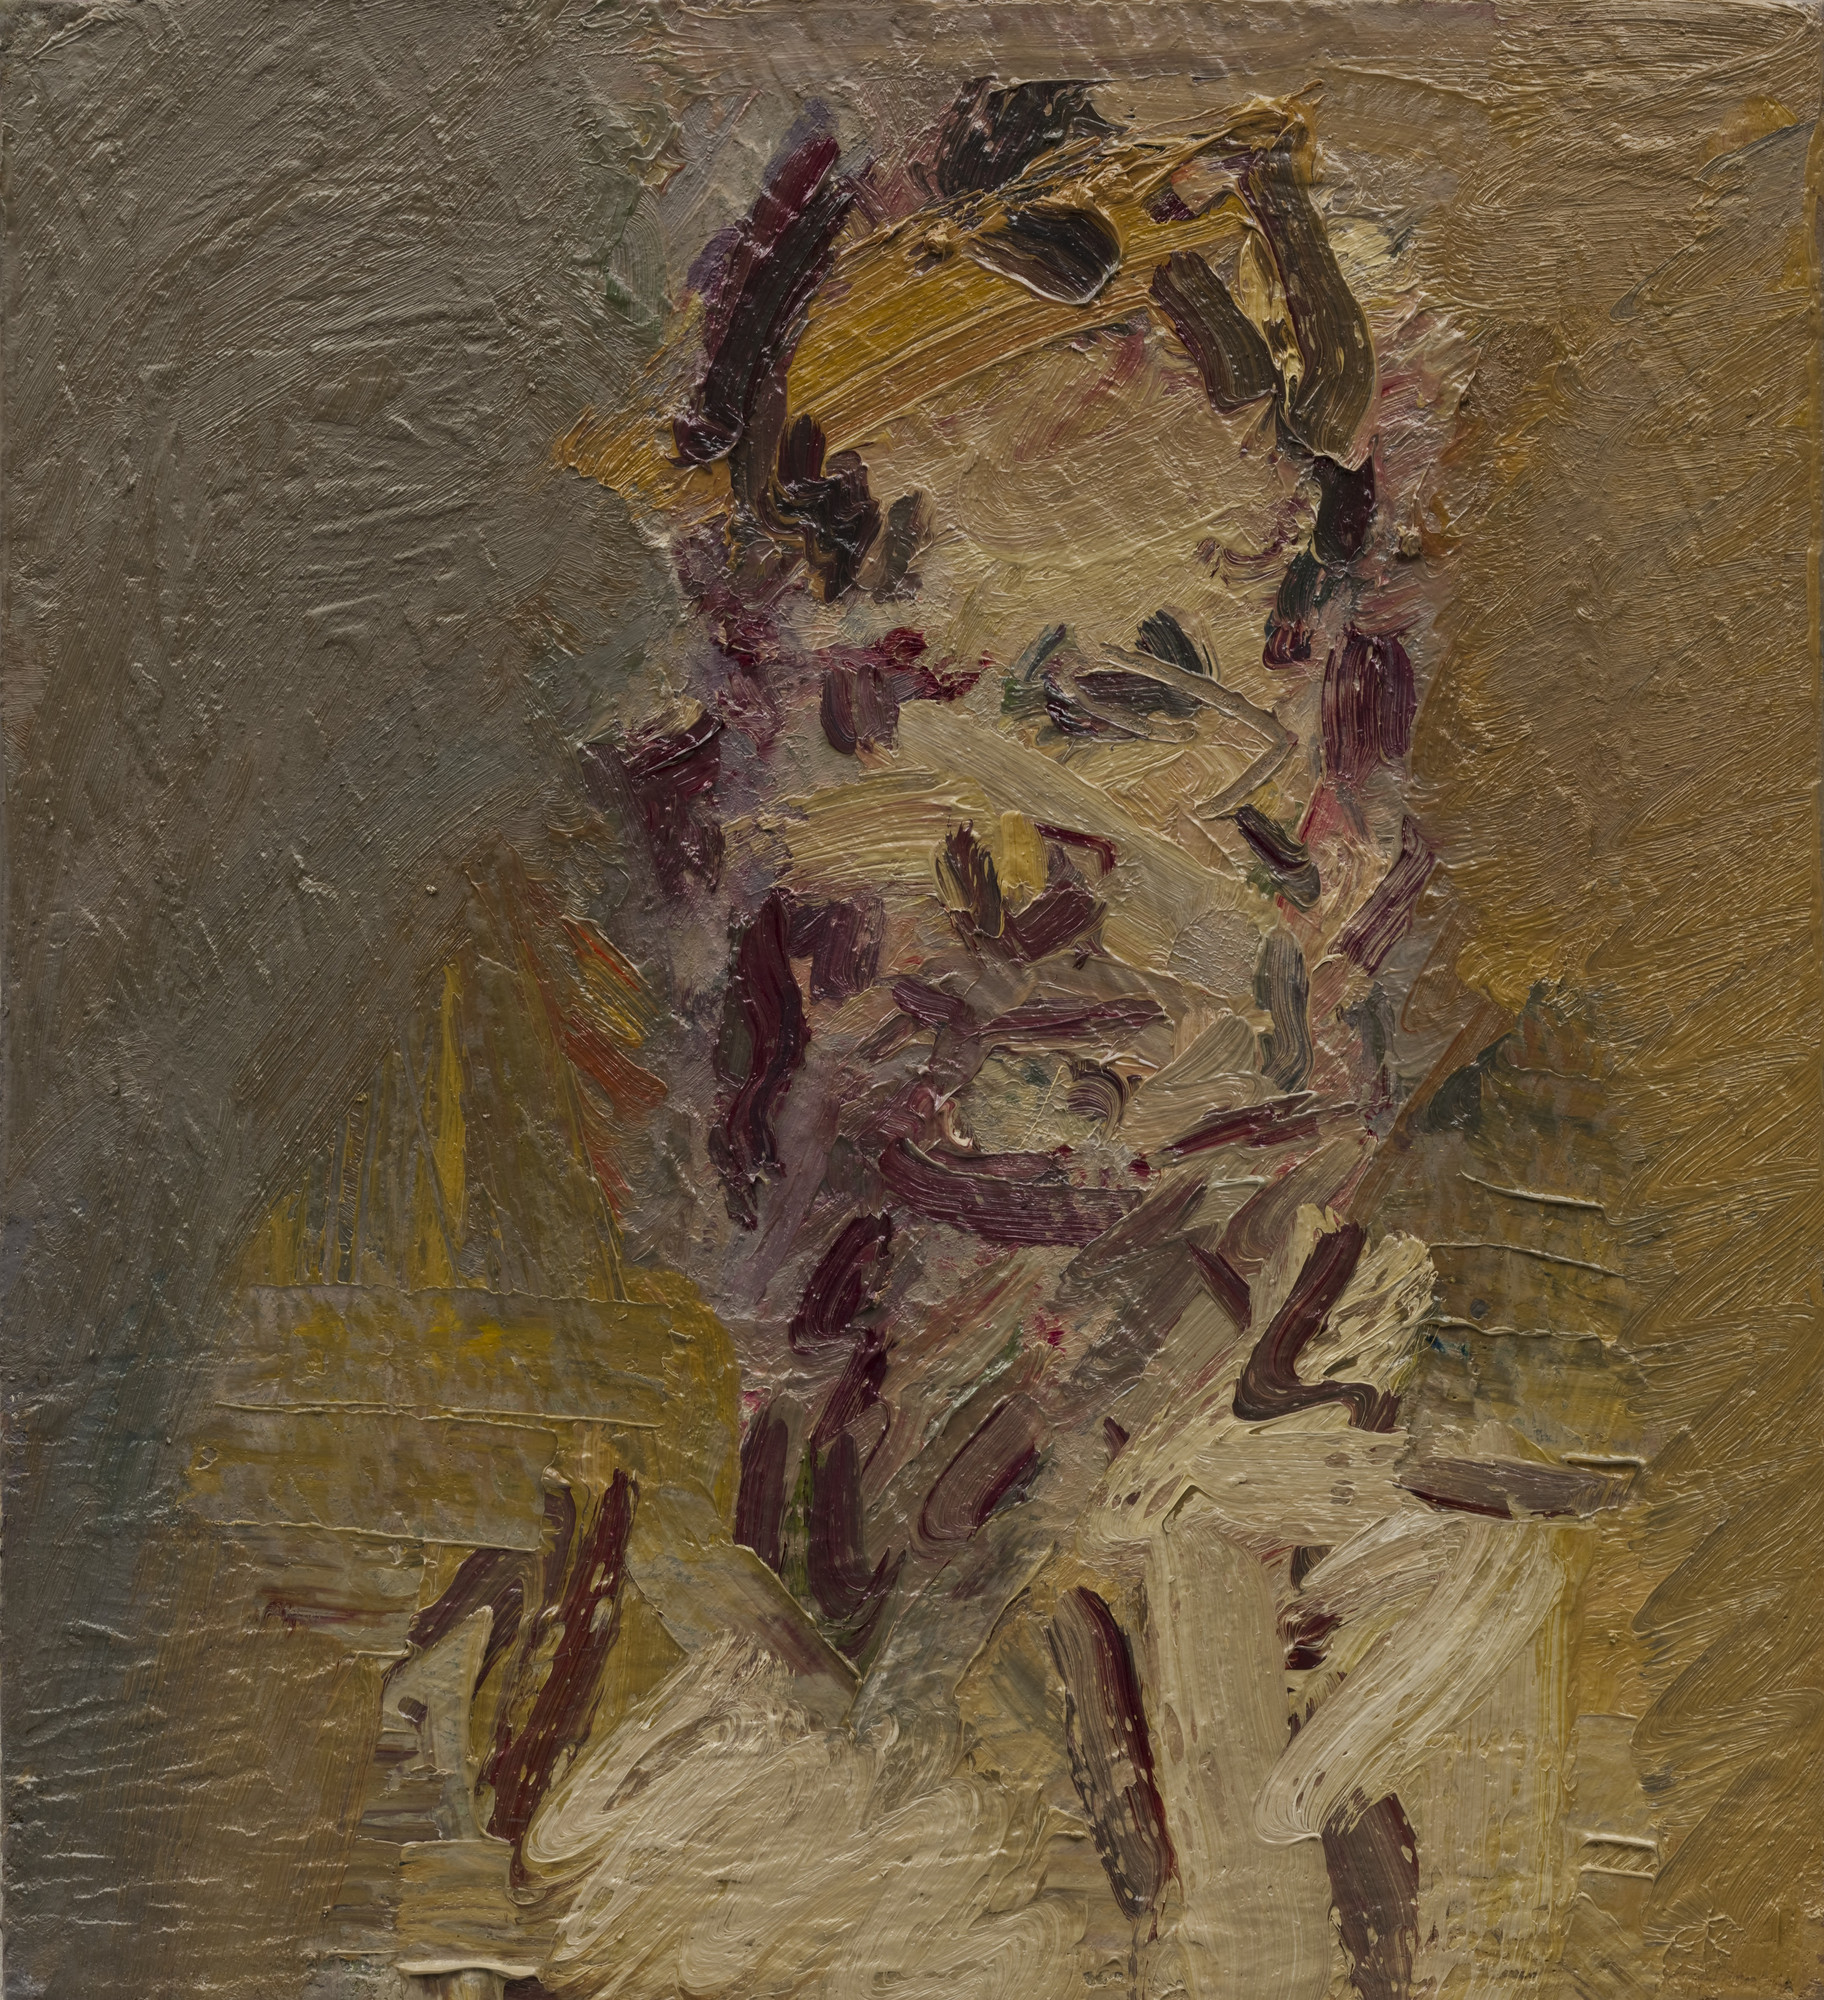 Frank Auerbach. Head of Jake. 2006-07